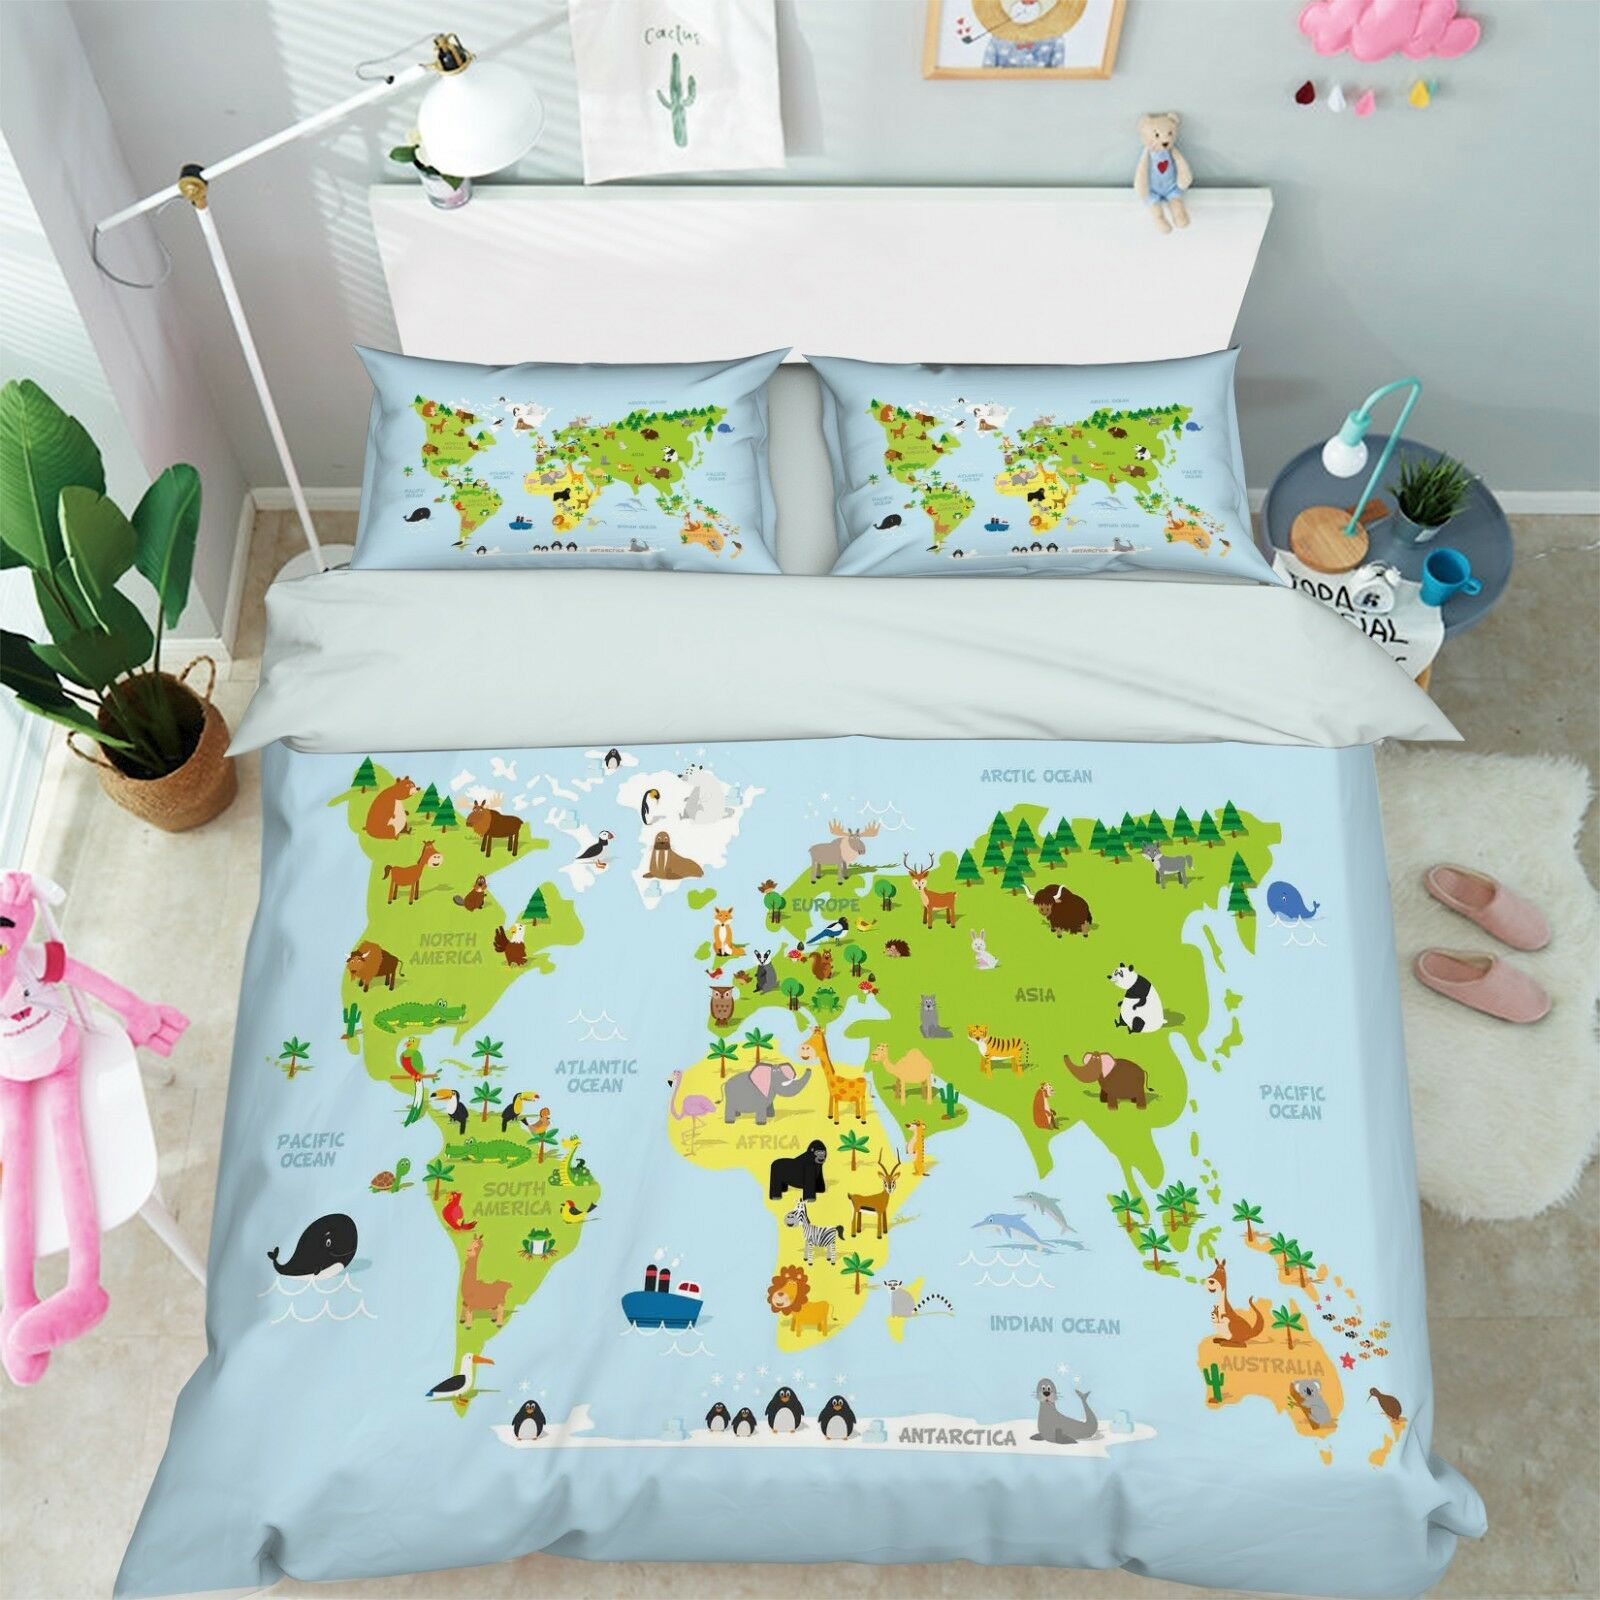 3D World Map 206 Bed Pillowcases Quilt Duvet Cover Set Single Queen King Size AU